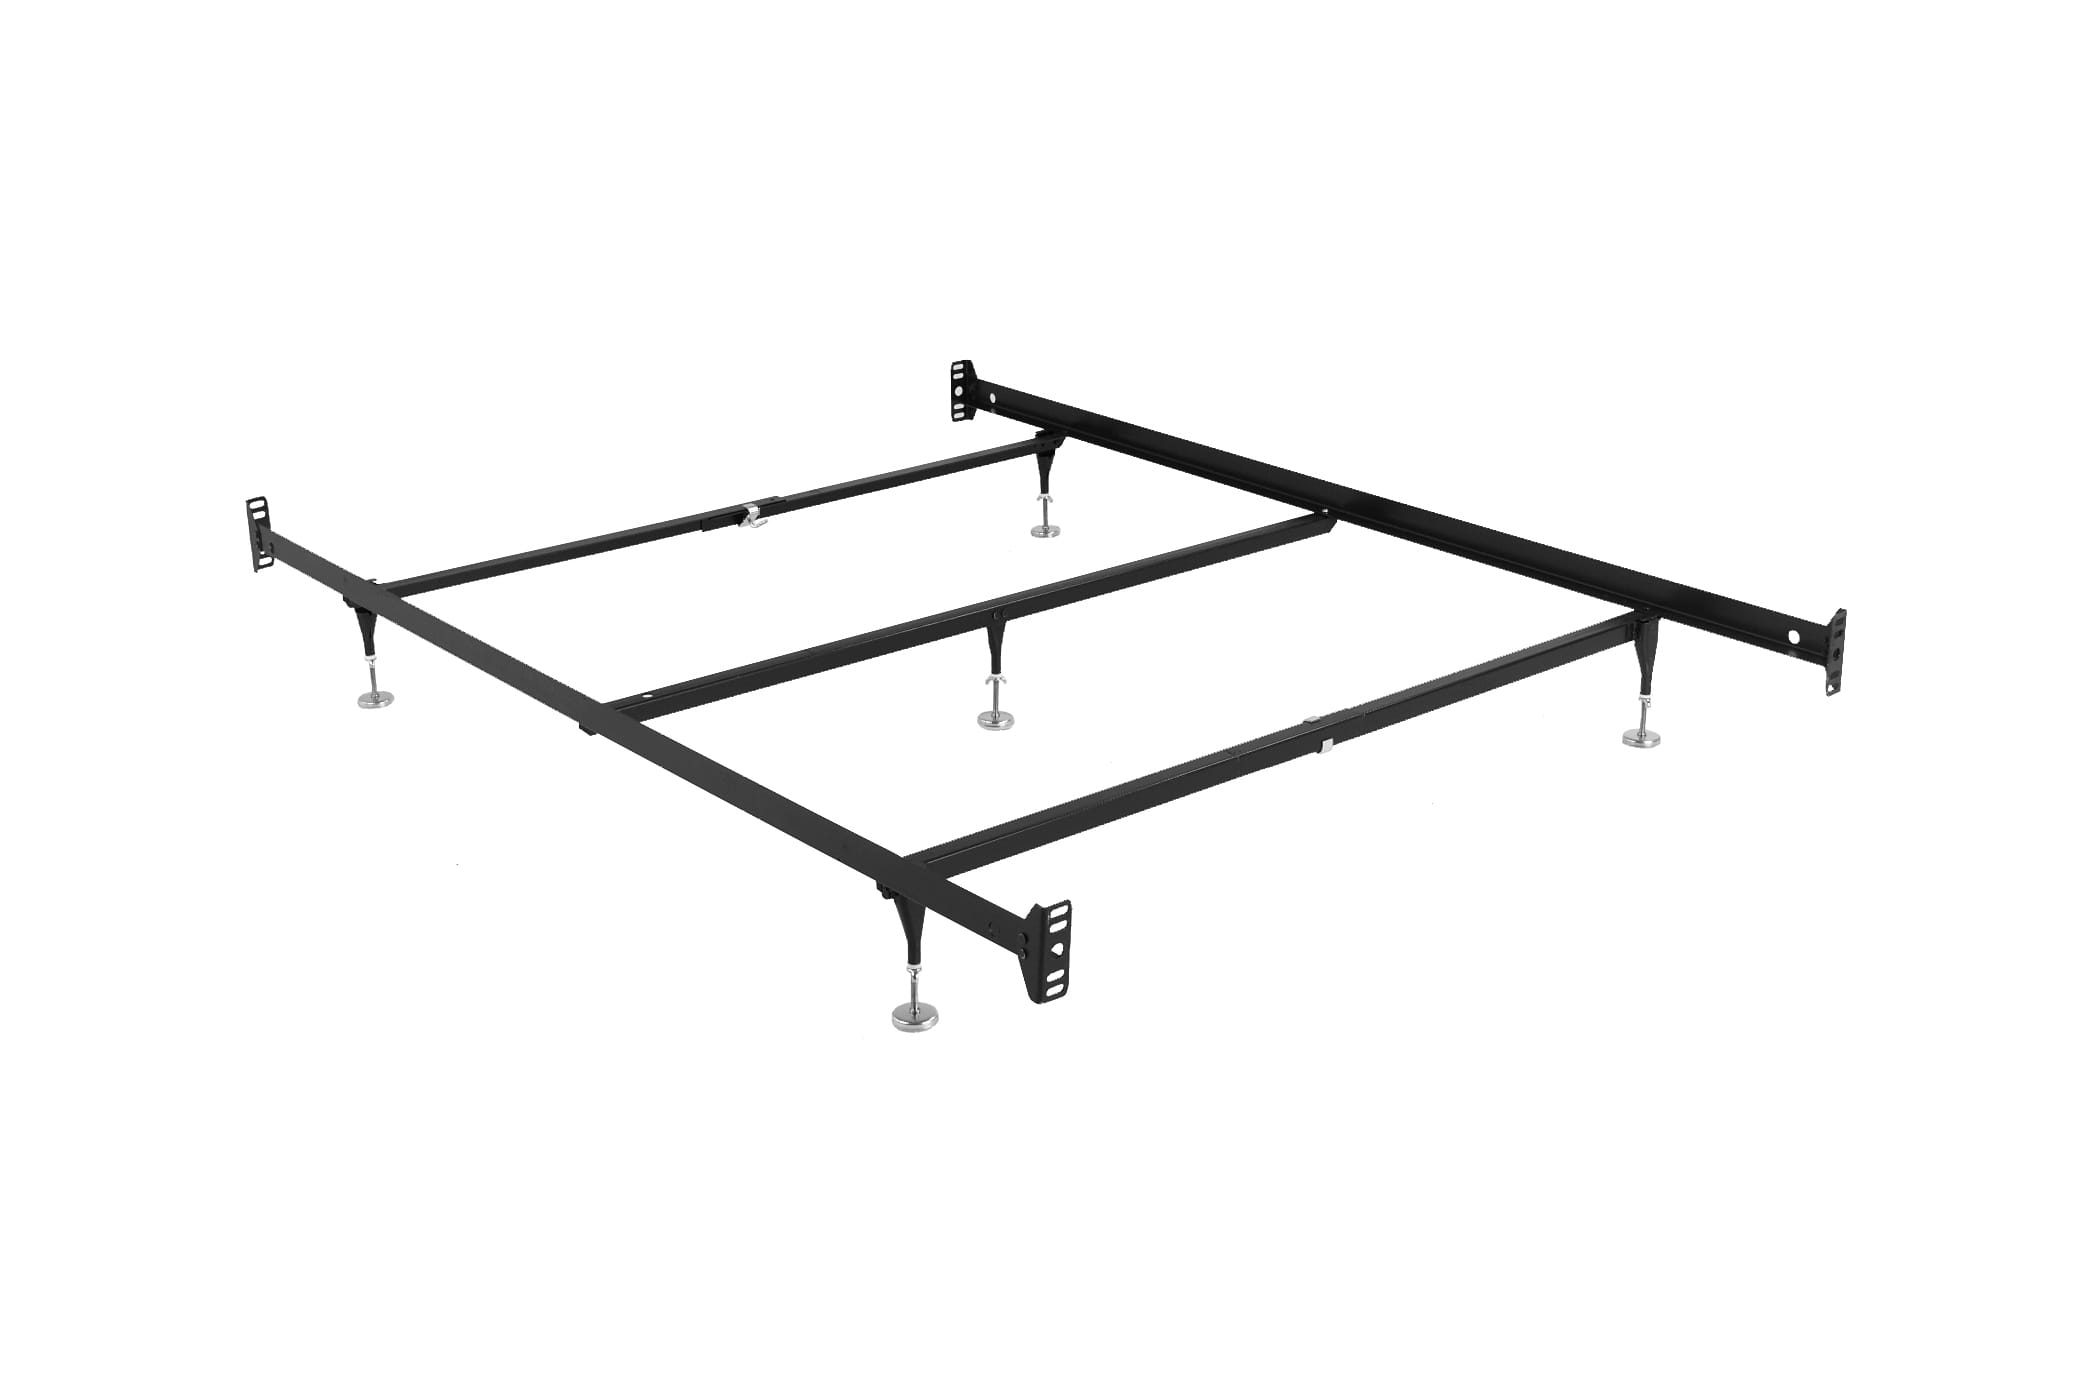 Fashion Bed 1000 Series Adjustable Fashion Rails